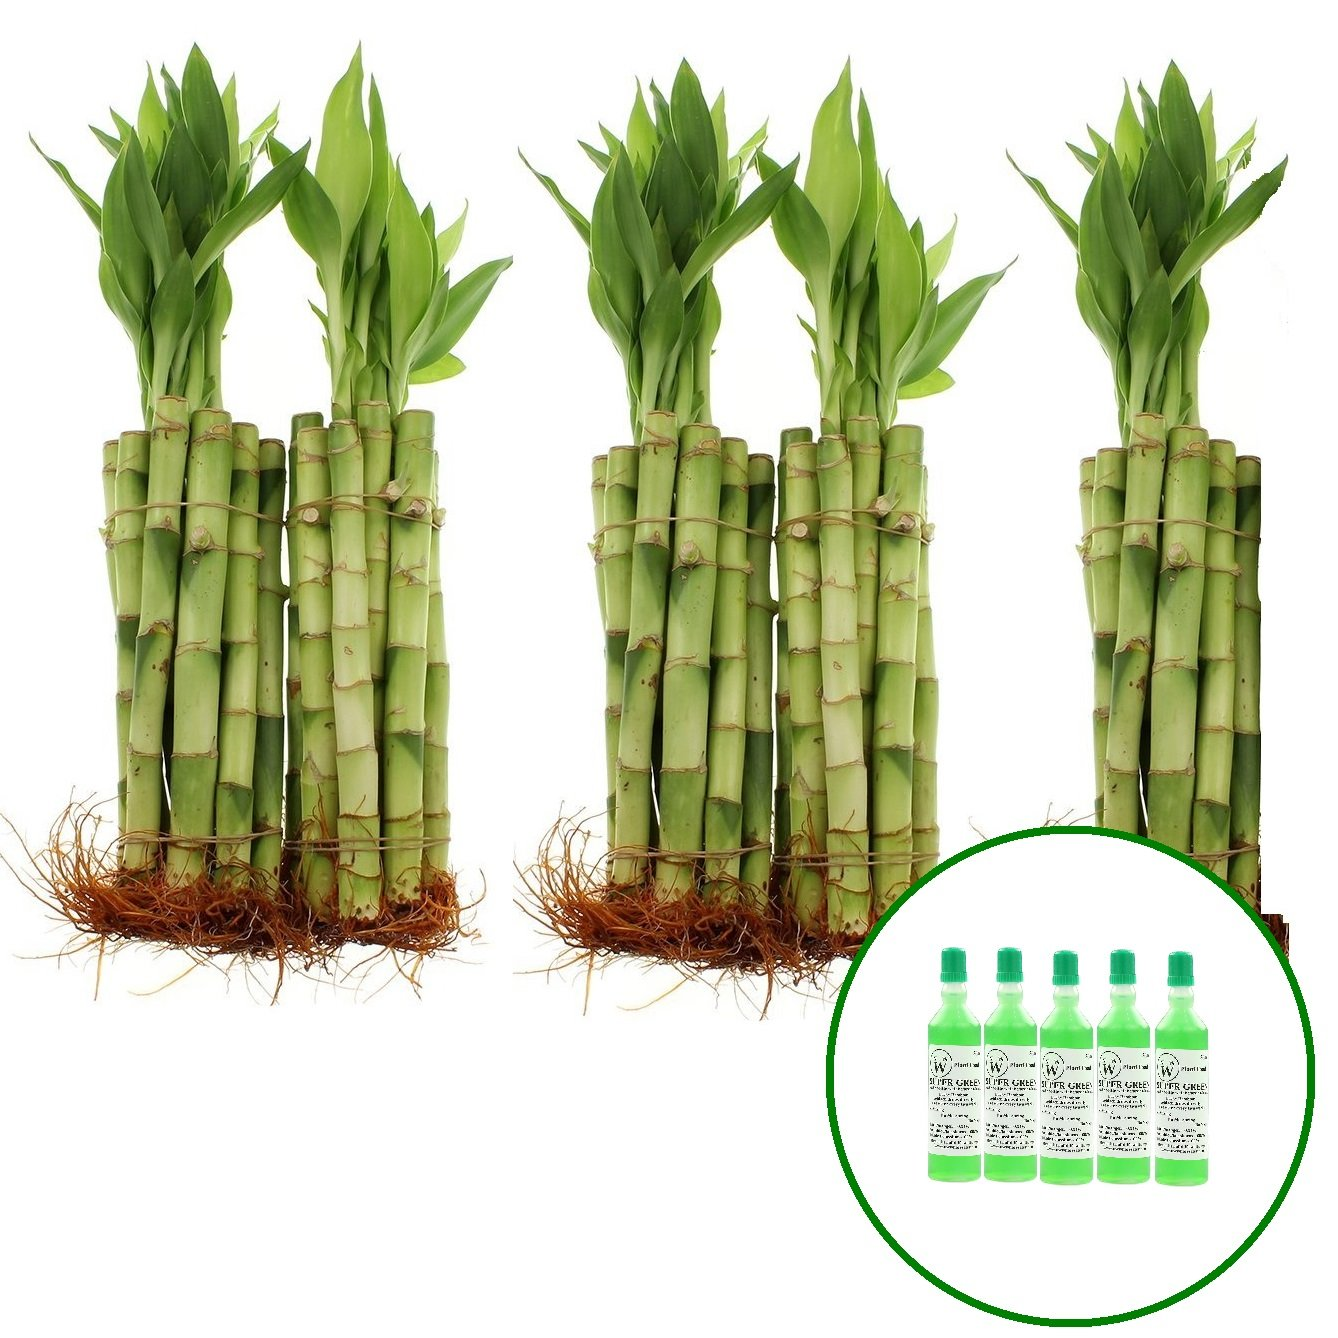 NW Wholesaler - Live Lucky Bamboo 8'' Straight Stalks w/ 5 Free Bottles of Bamboo Fertilizer (50)